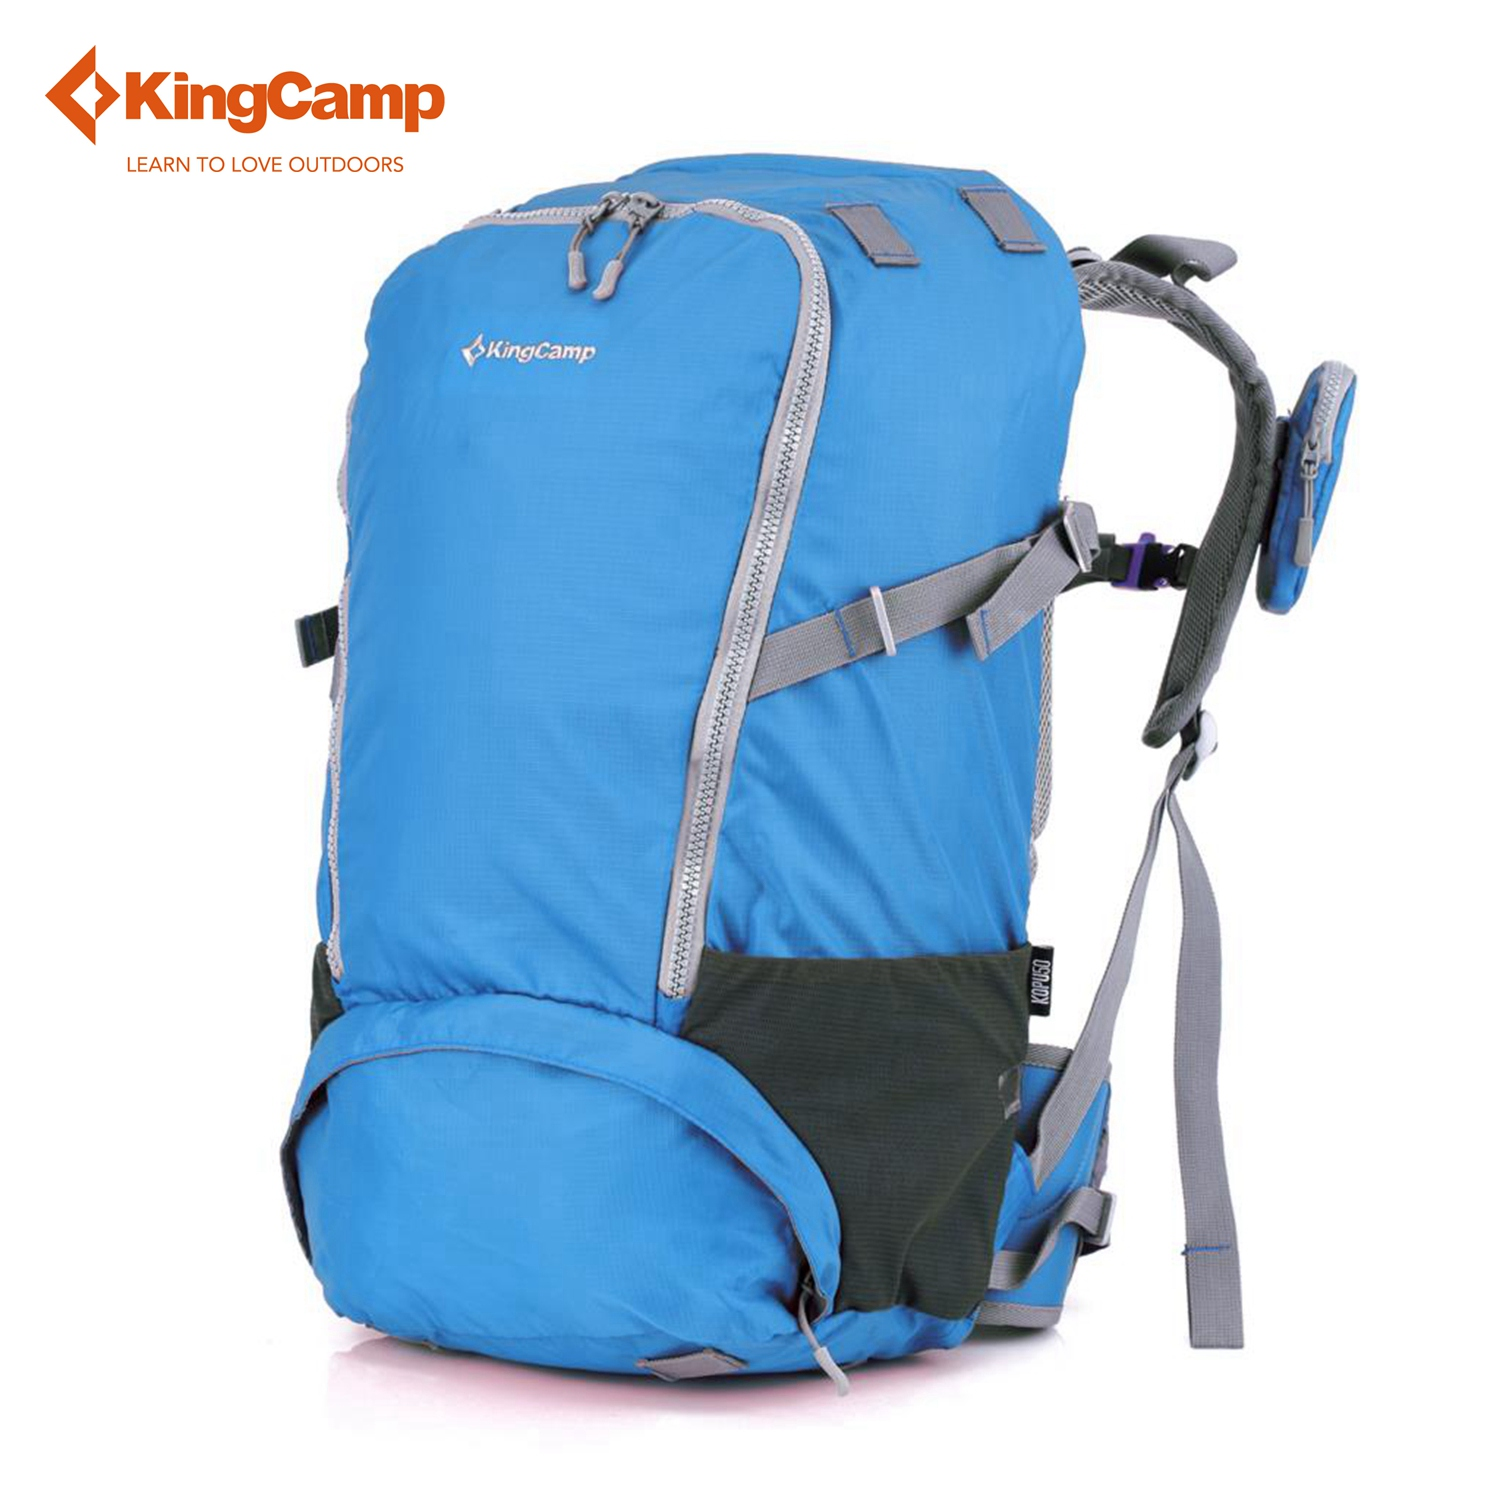 KingCamp Sport Bag Camping Backpacks Outdoor ANDROS 60 Outdoor Hiking Climbing Travelling Backpack kimlee 25l multifunctional sports backpack outdoor camping backpack bag climbing fishing travelling backpack free shipping